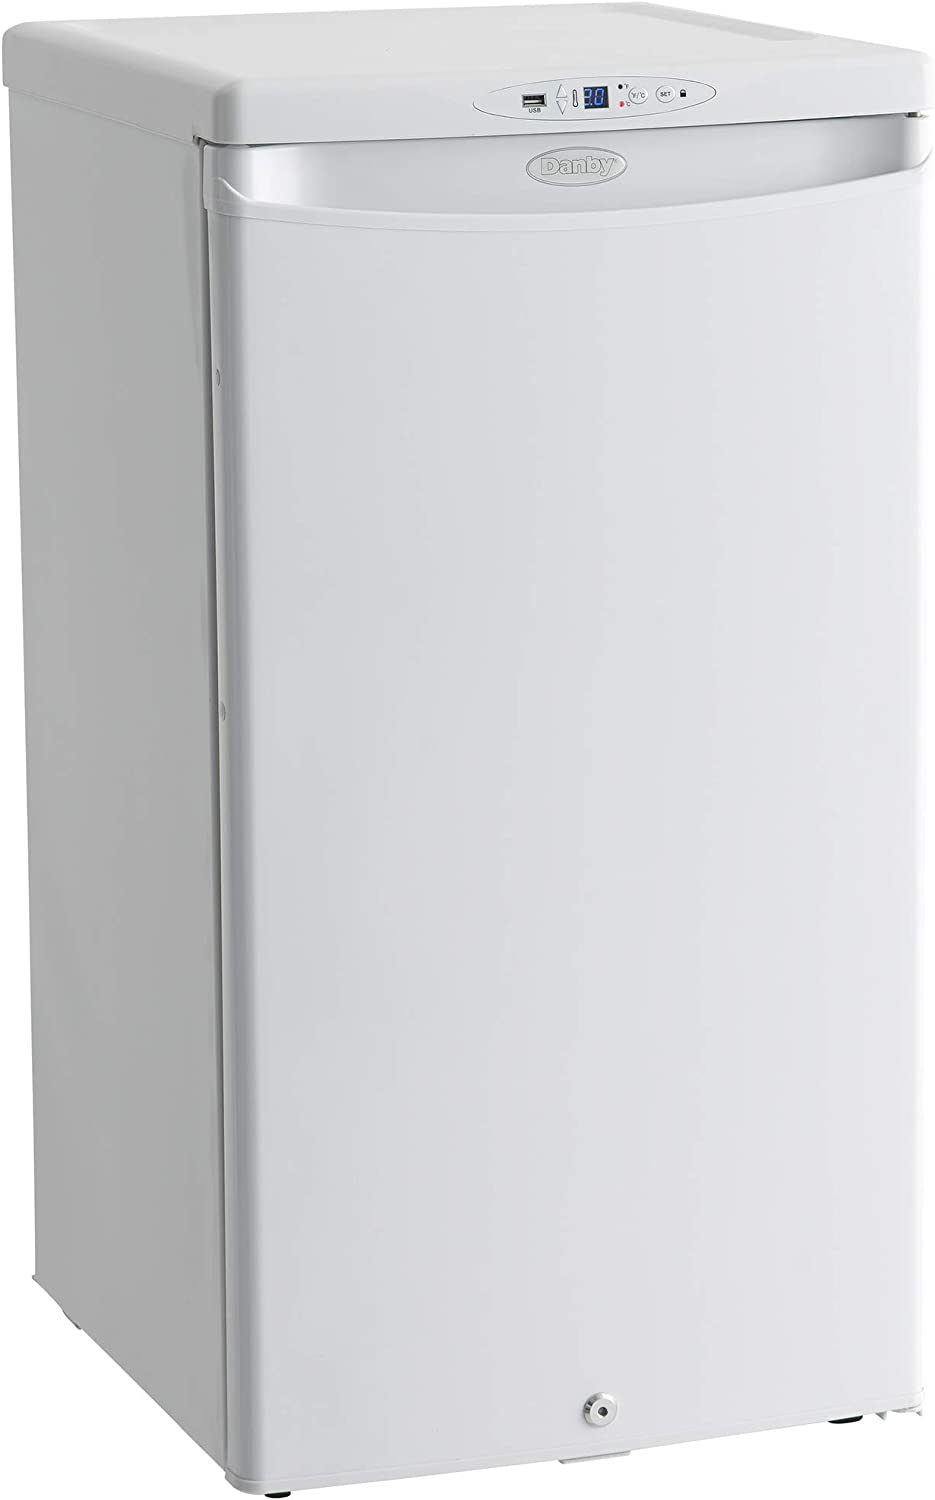 Danby Health DH032A1W-1 3.2 Cu.Ft. Institutional Max 74% OFF Medical Grade Award M